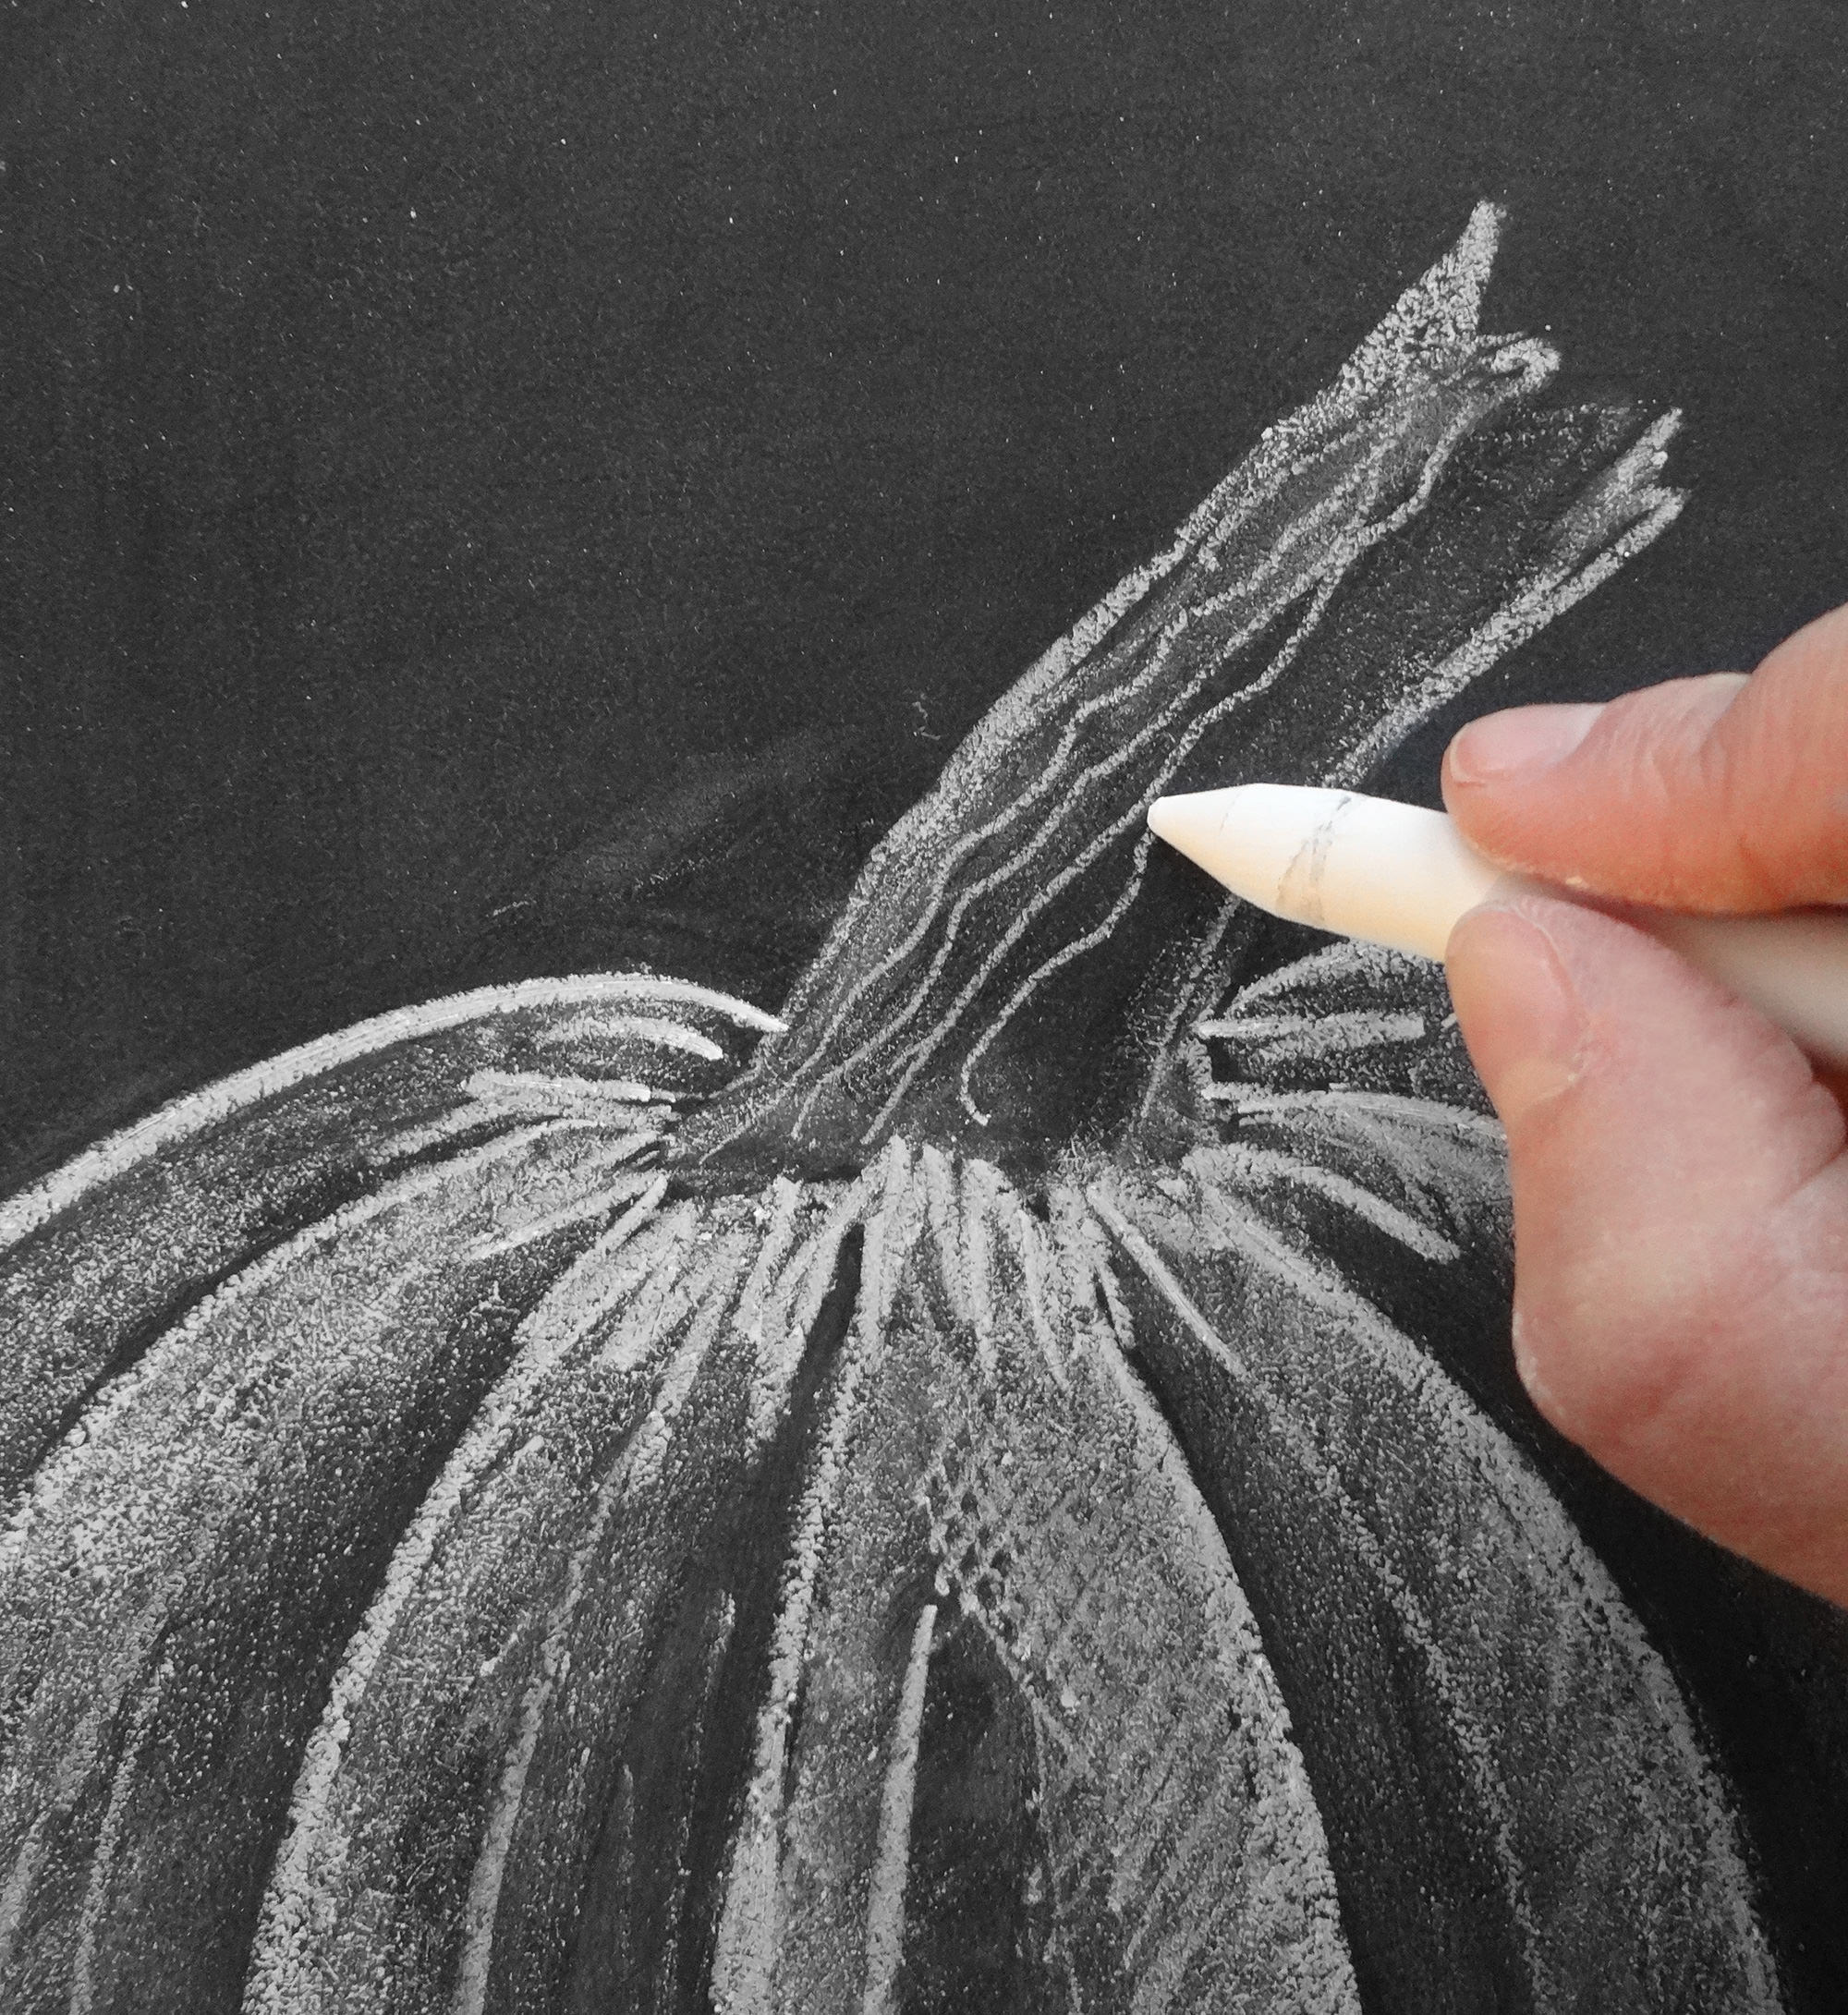 Valerie McKeehan, author of The Complete Book of Chalk Lettering, gives a step-by-step tutorial on how to draw a chalk pumpkin.